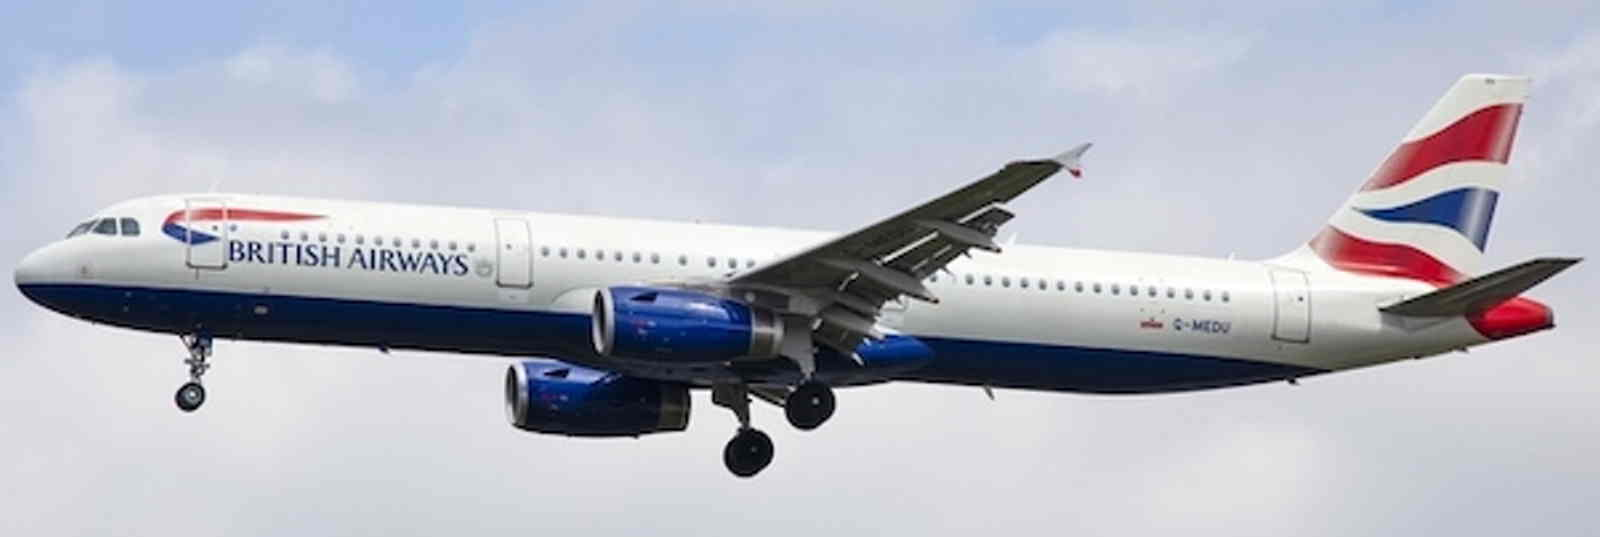 British Airways A321-200 G-MEDU Union Jack Tail ((1:400))